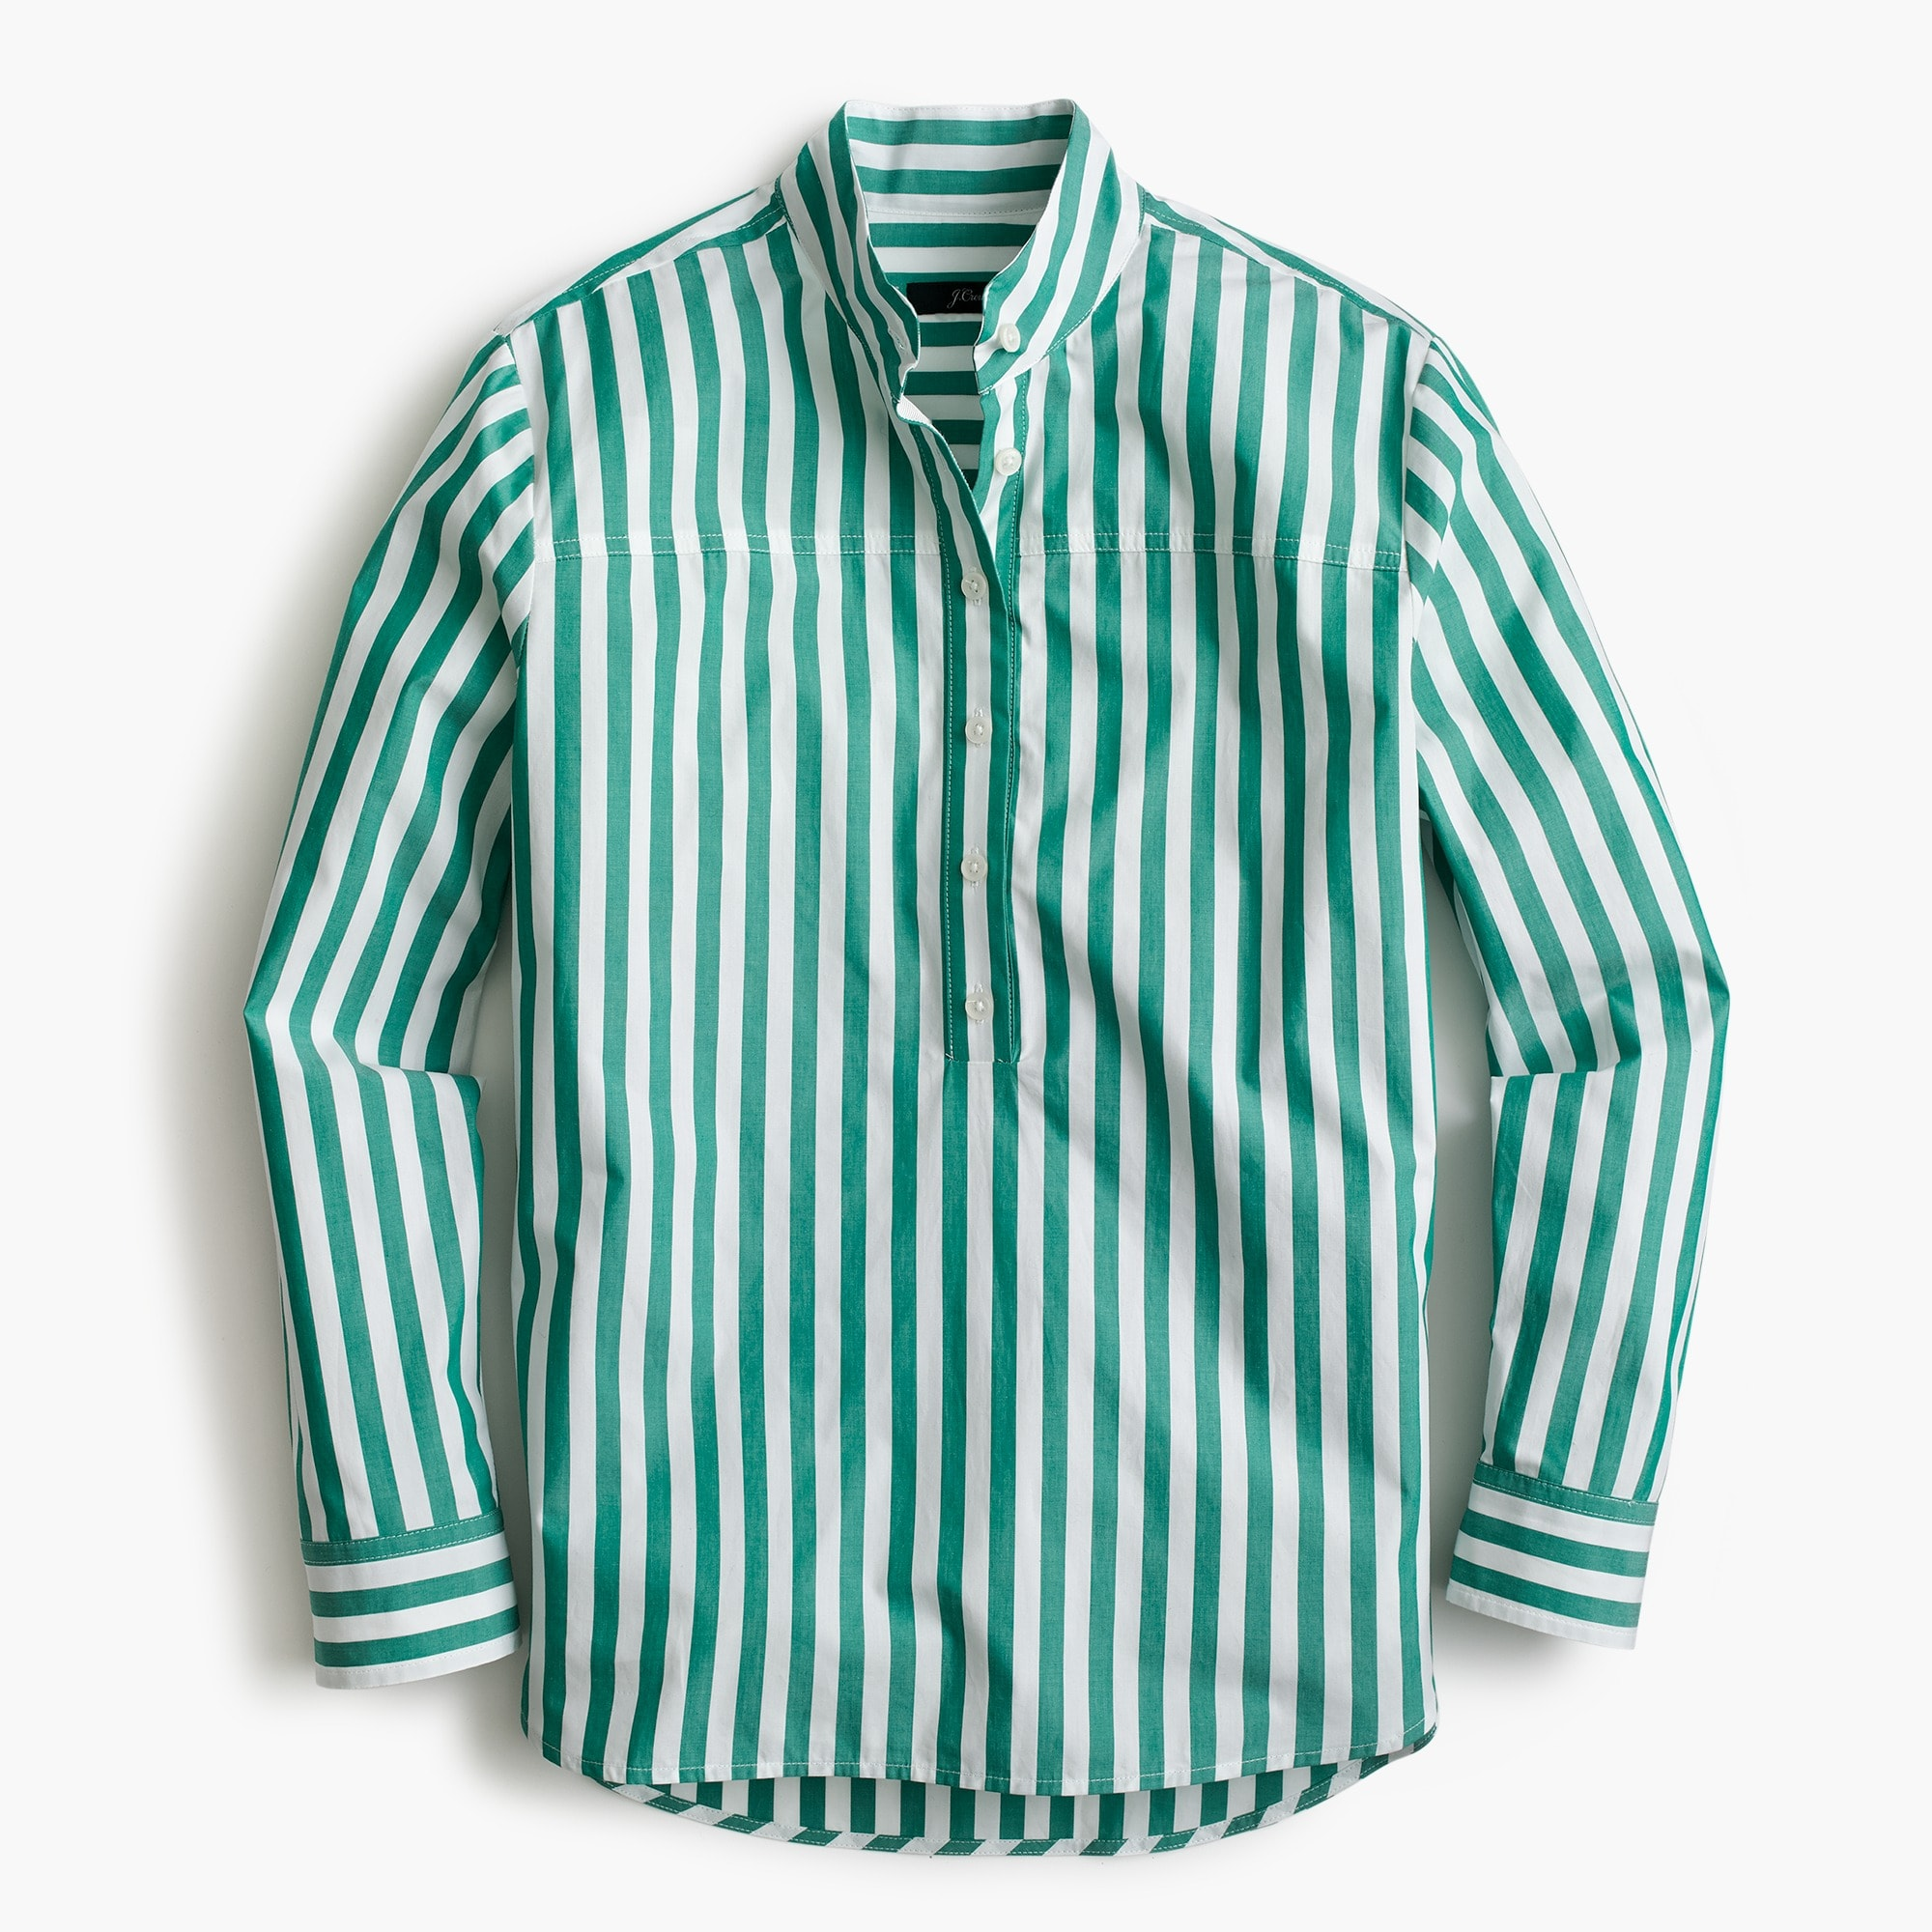 Band-collar popover tunic in bold stripe